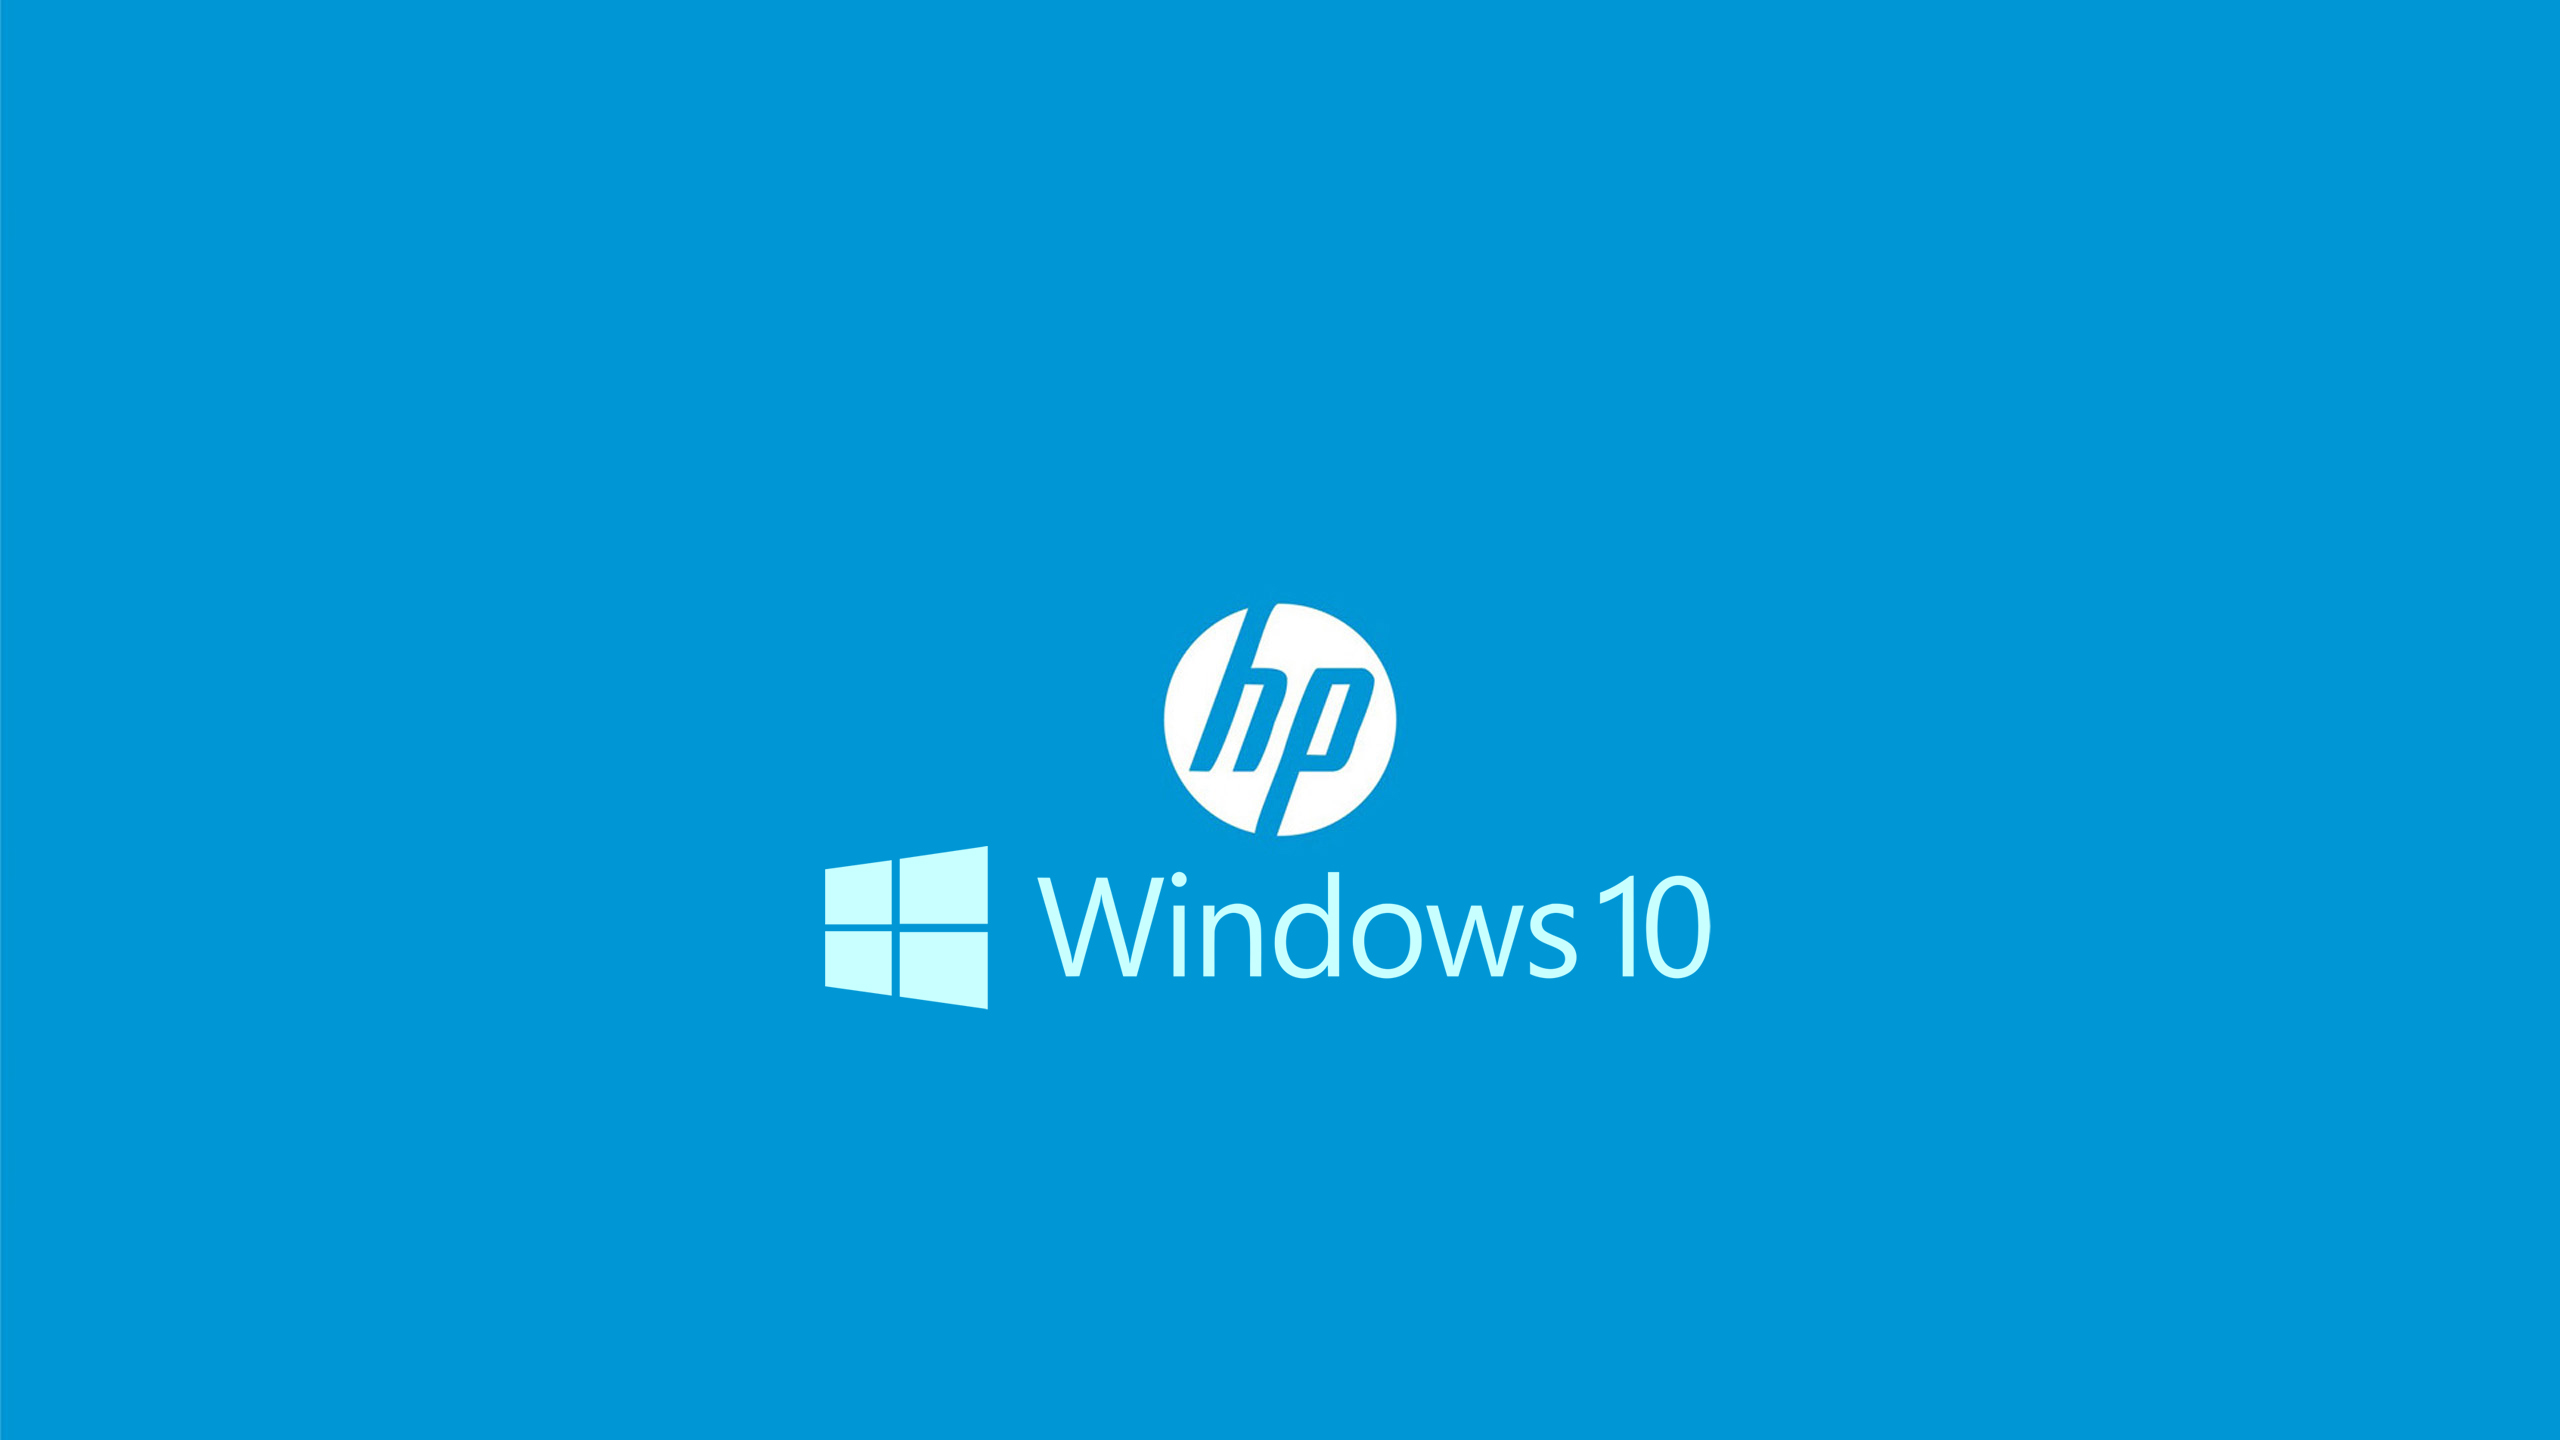 Windows 10 Oem Wallpaper For Hp Laptops 03 0f 10 Hp And Windows 10